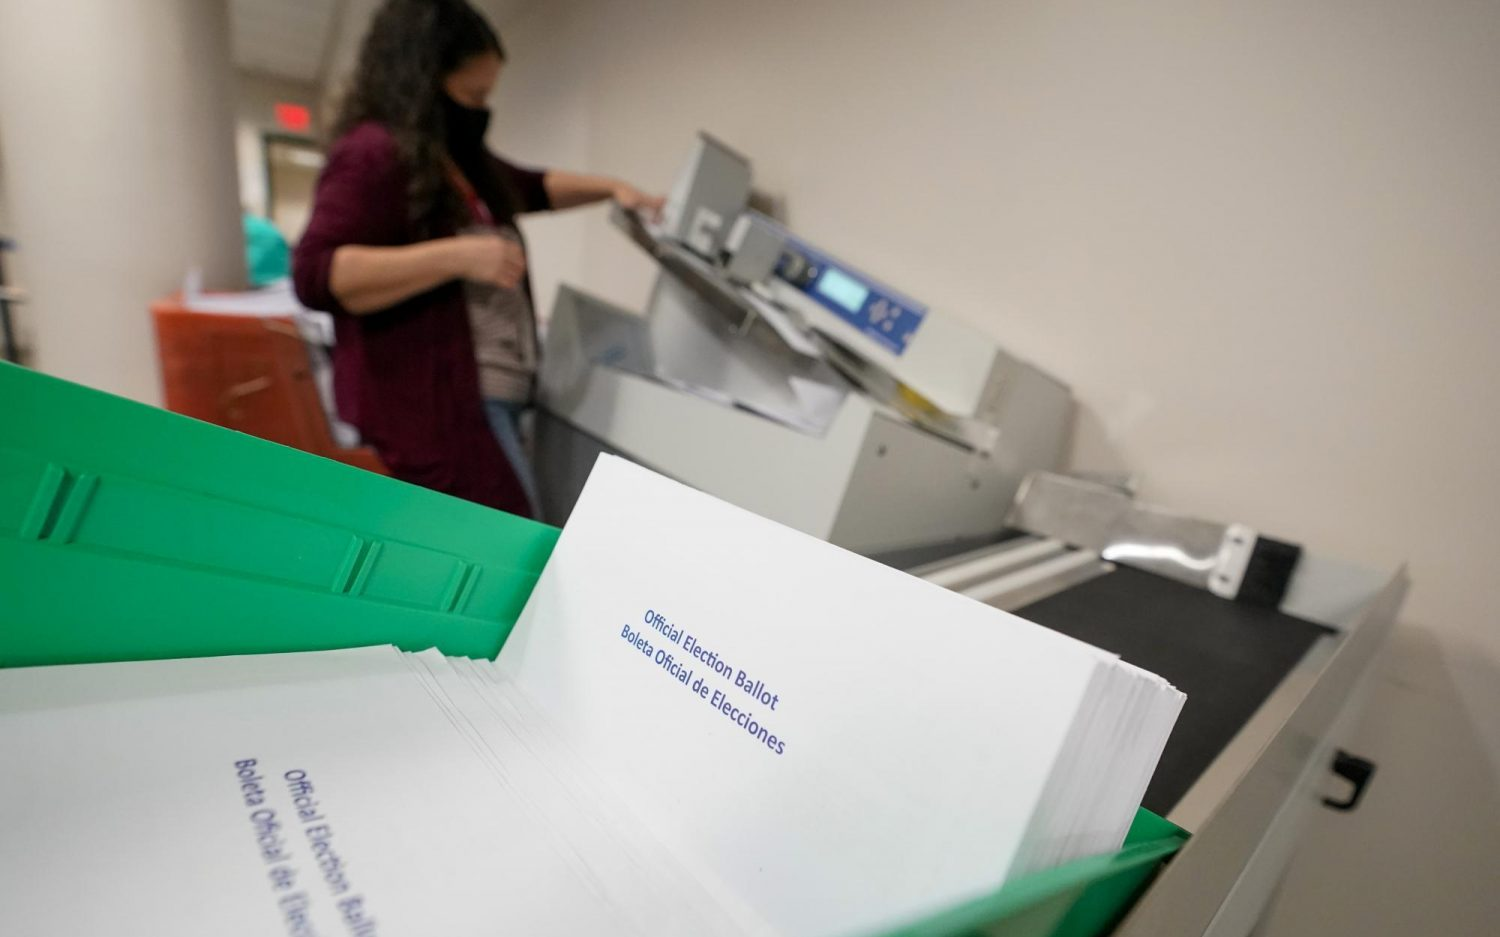 Ensuring an accurate vote